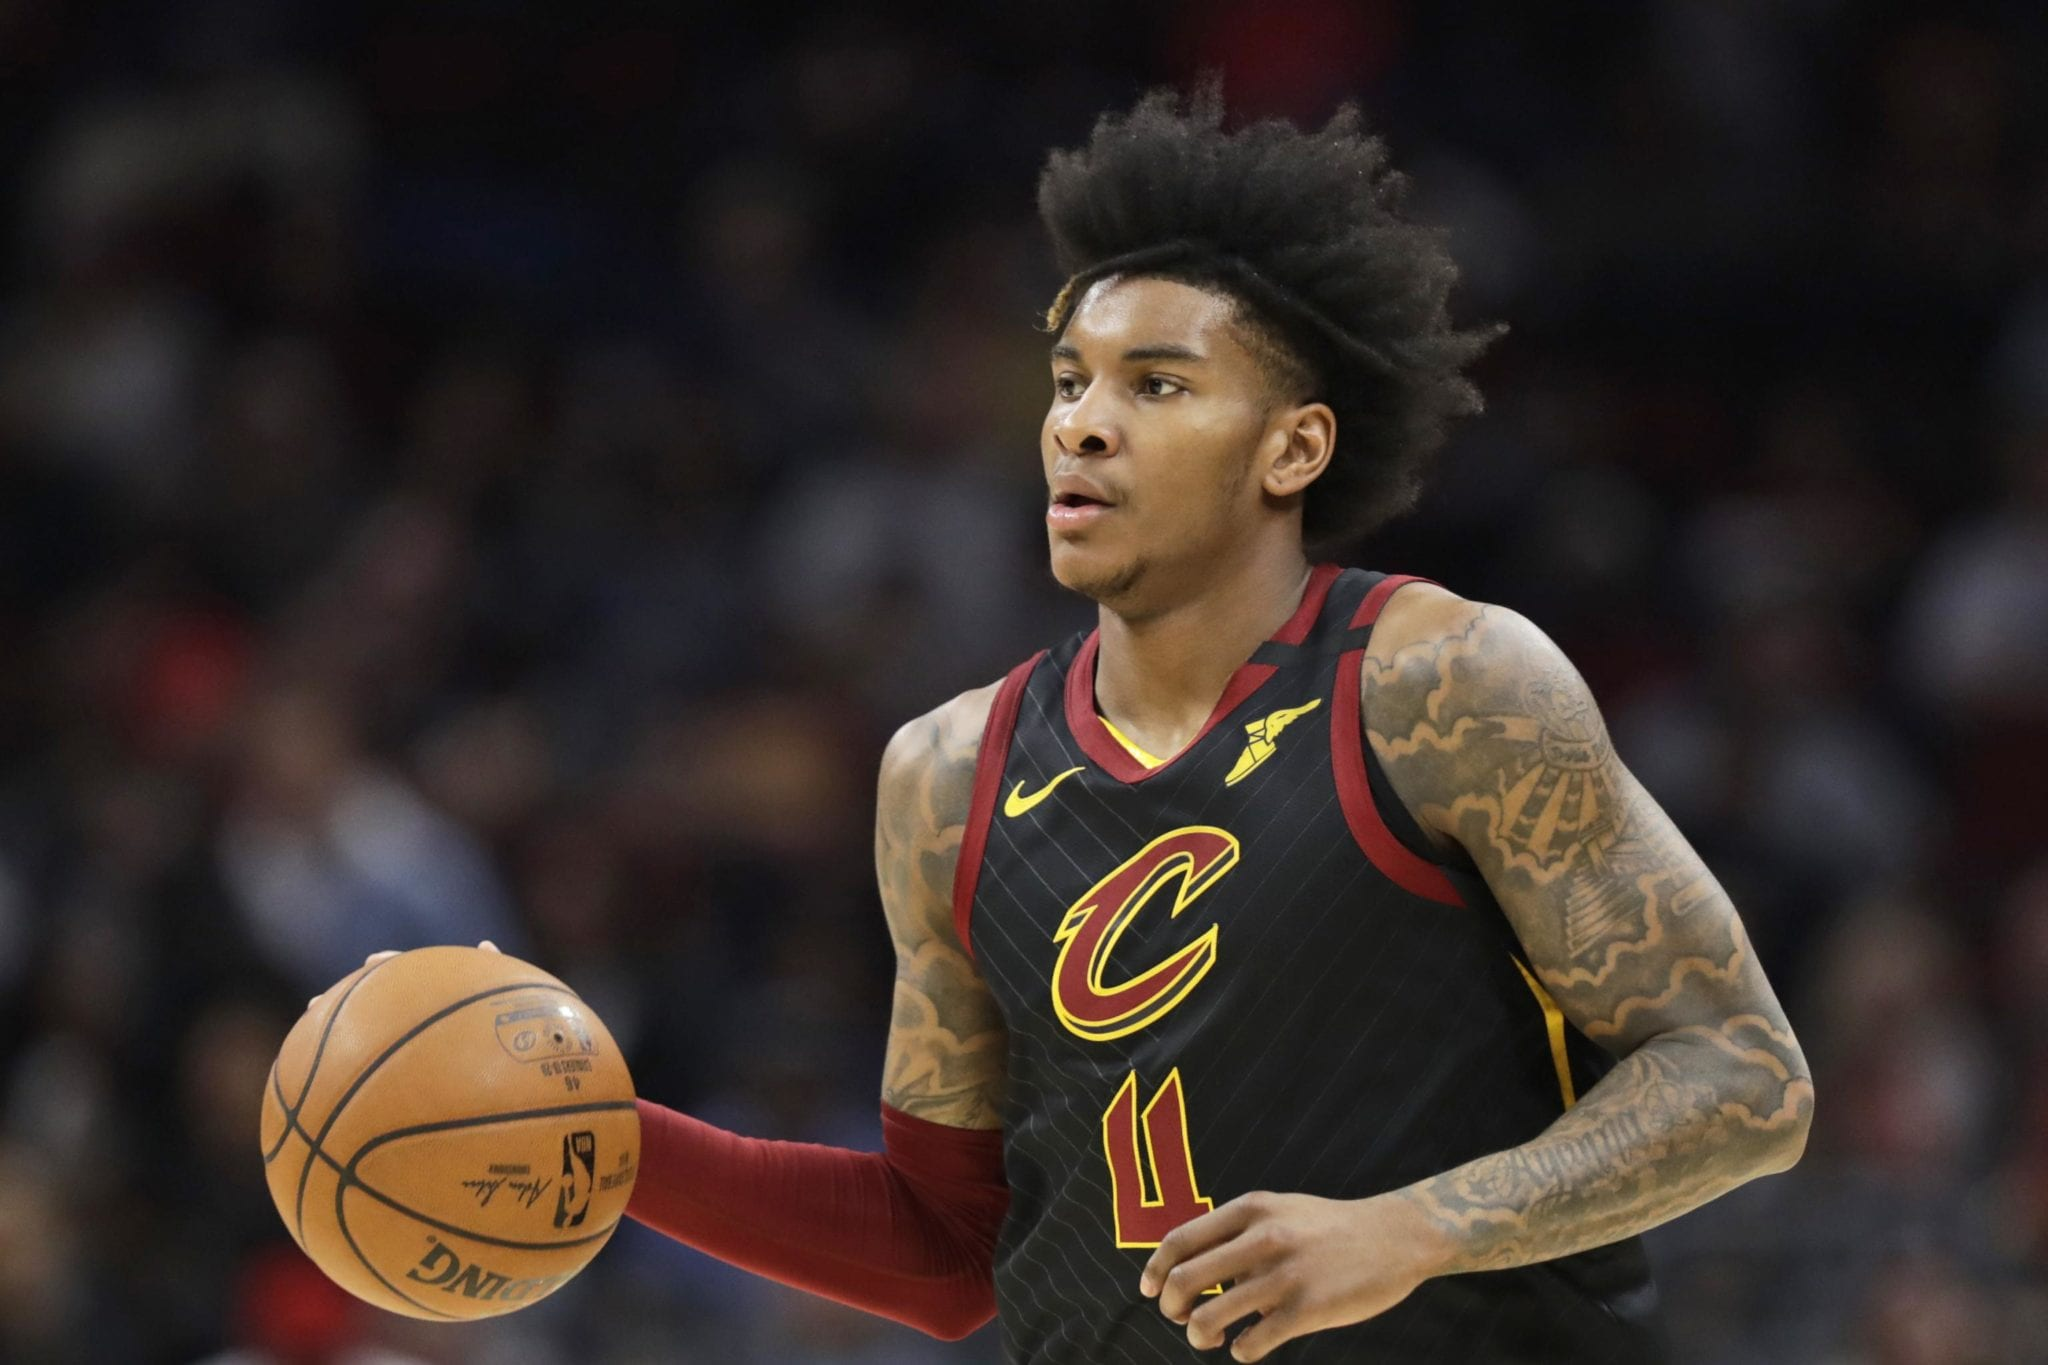 Cavs Young Star Kevin Porter Jr. Set For Release After Locker Room Incident